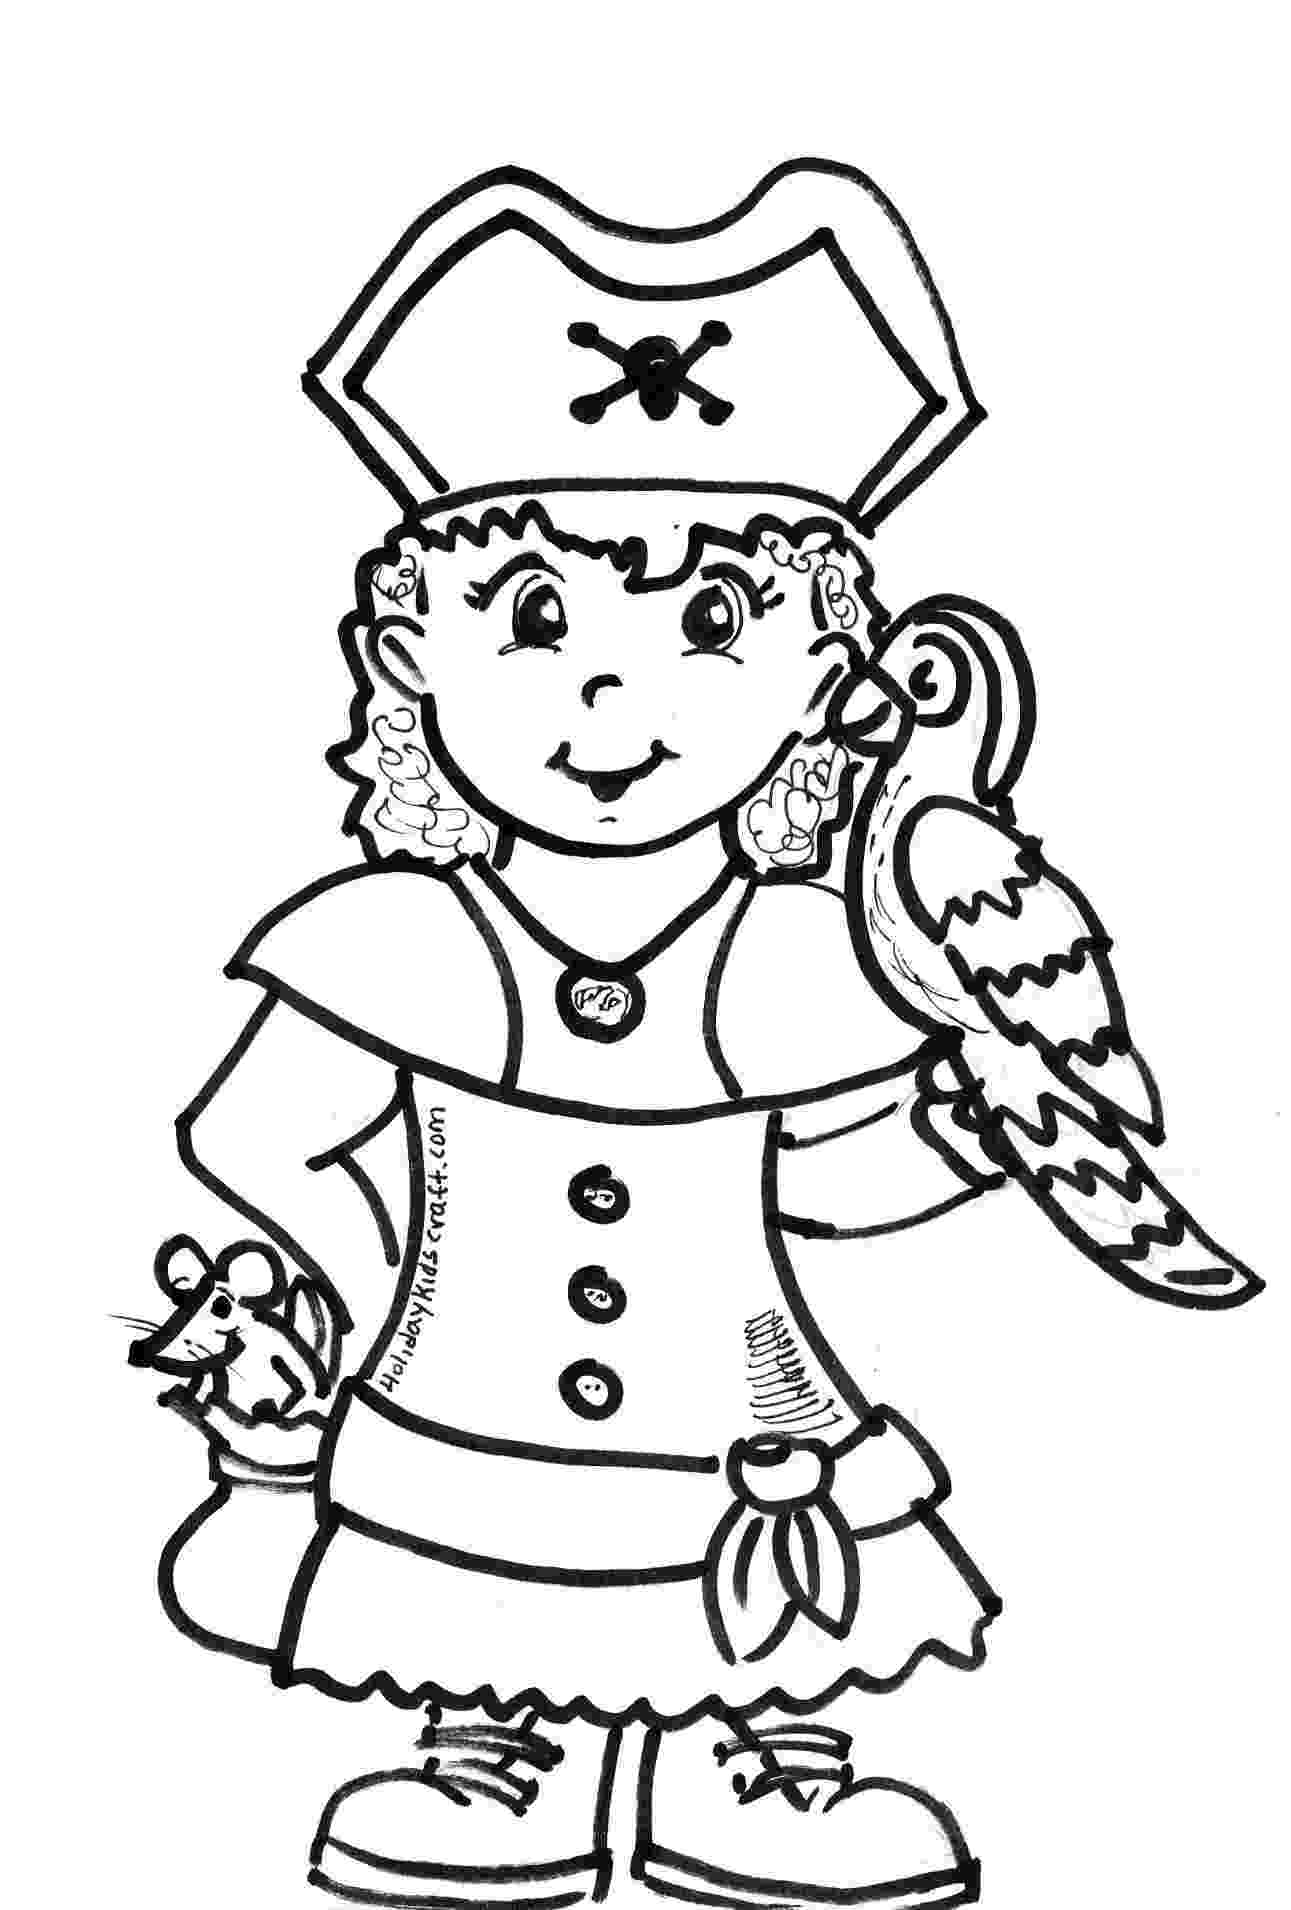 pirates coloring pages pirate ship coloring pages getcoloringpagescom coloring pirates pages